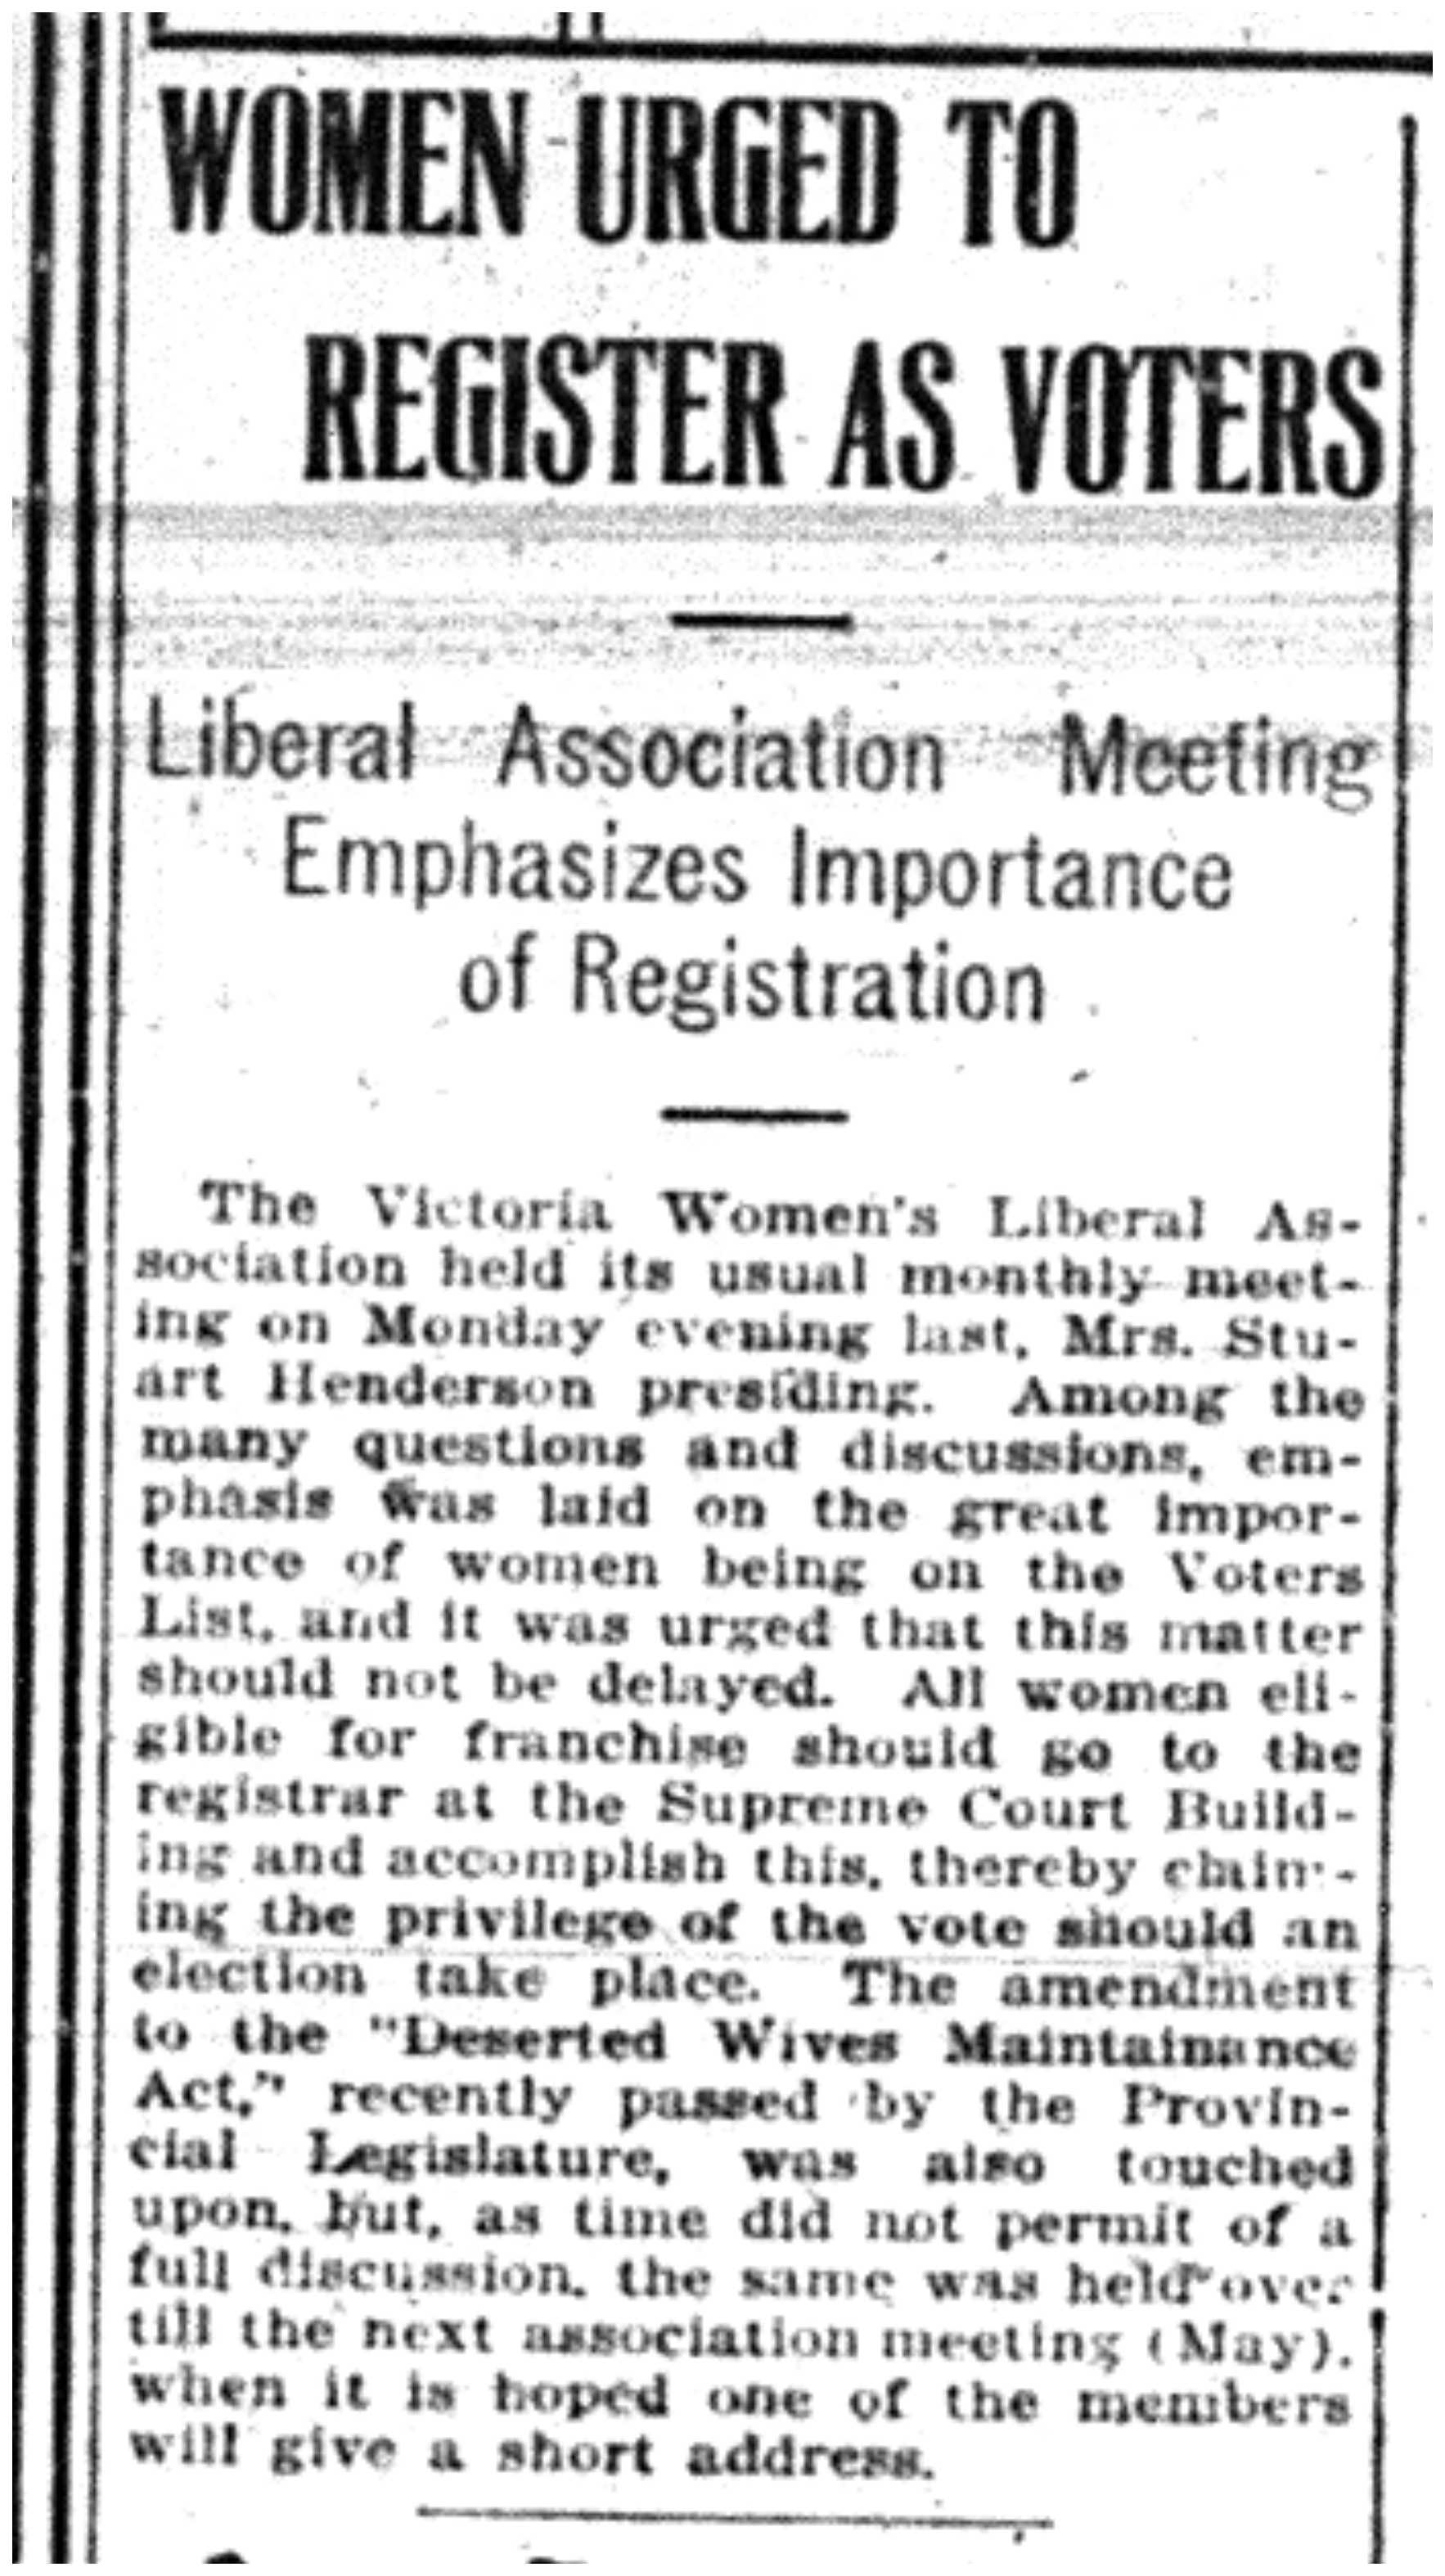 """Women Urged to Register As Voters"""